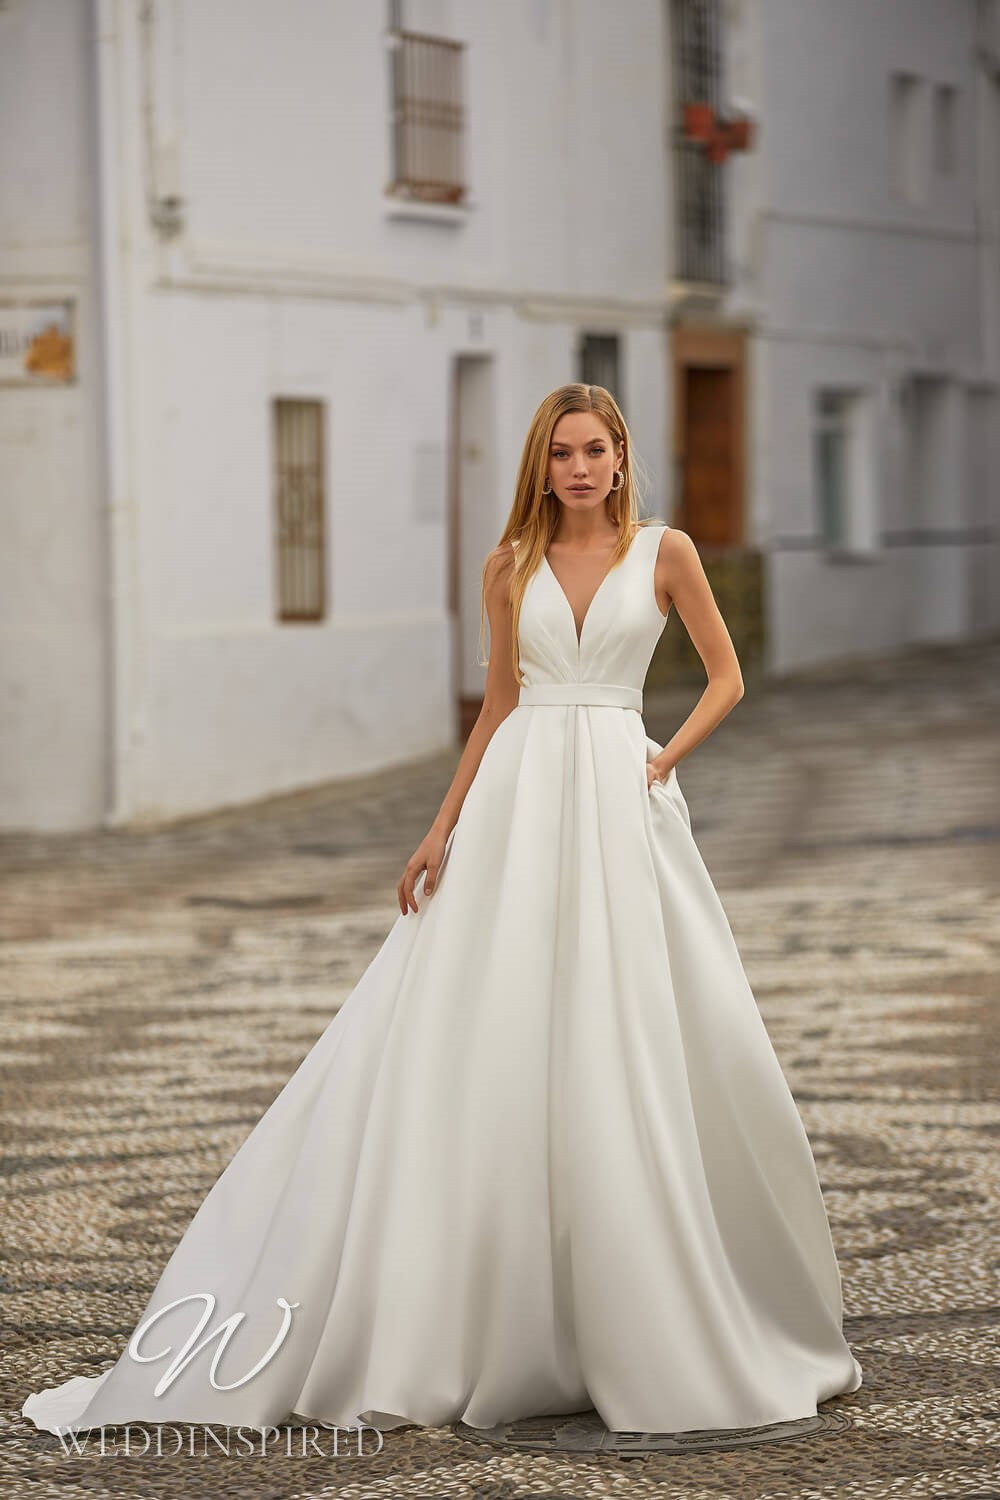 An Essential by Lussano 2021 simple satin A-line wedding dress with a v neck